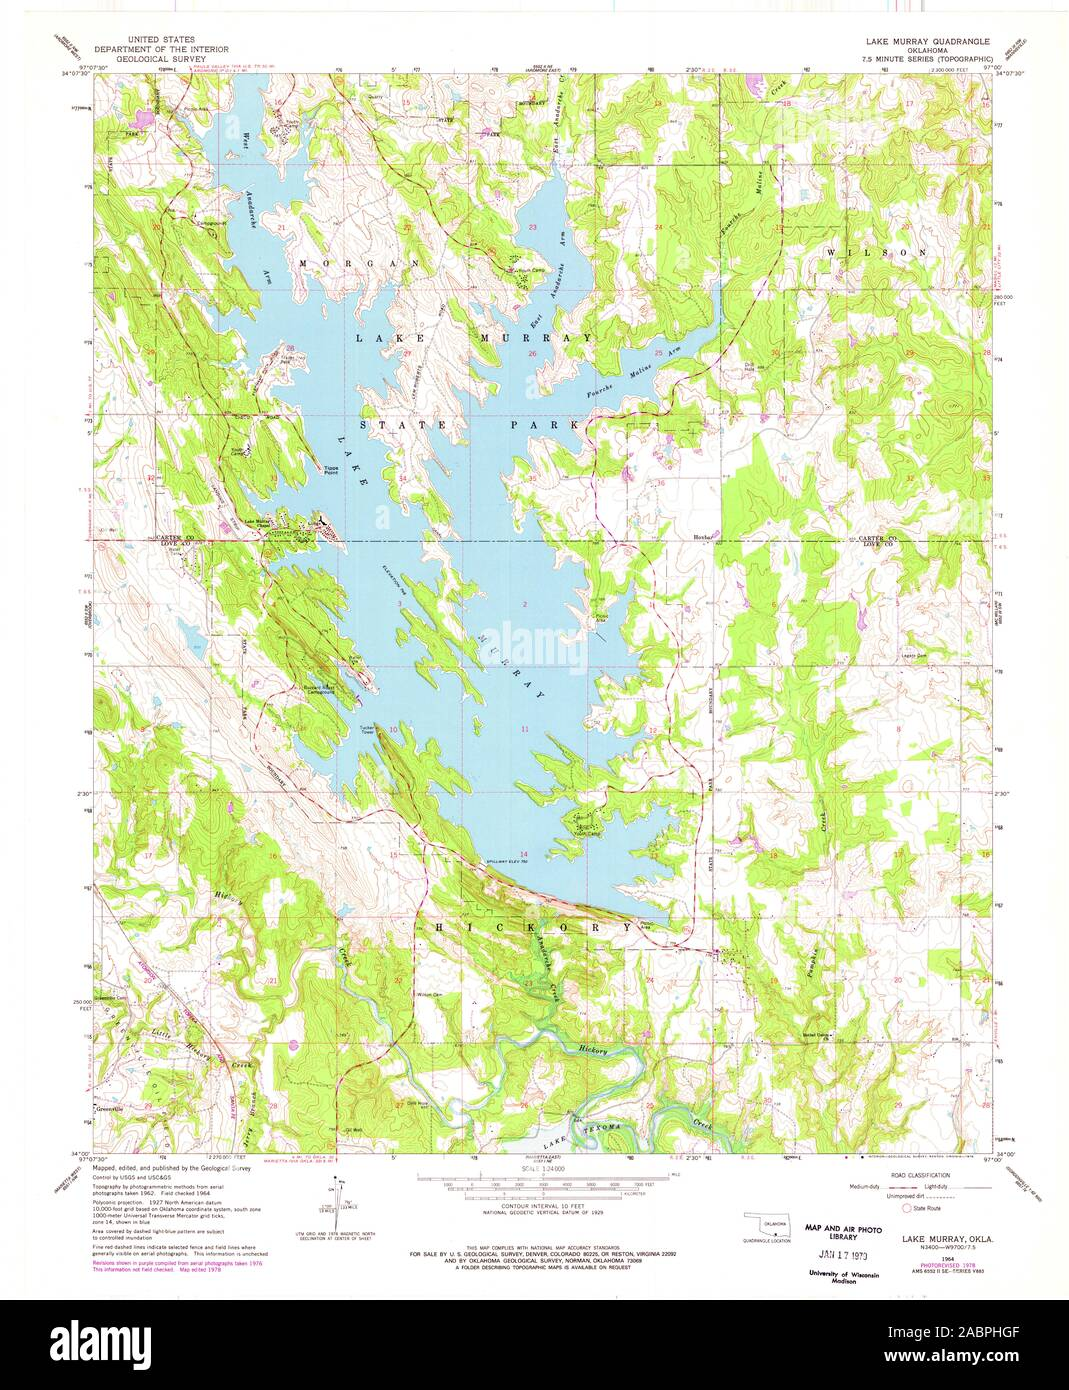 lake murray topographic map Usgs Topo Map Oklahoma Ok Lake Murray 706198 1964 24000 Restoration Stock Photo Alamy lake murray topographic map